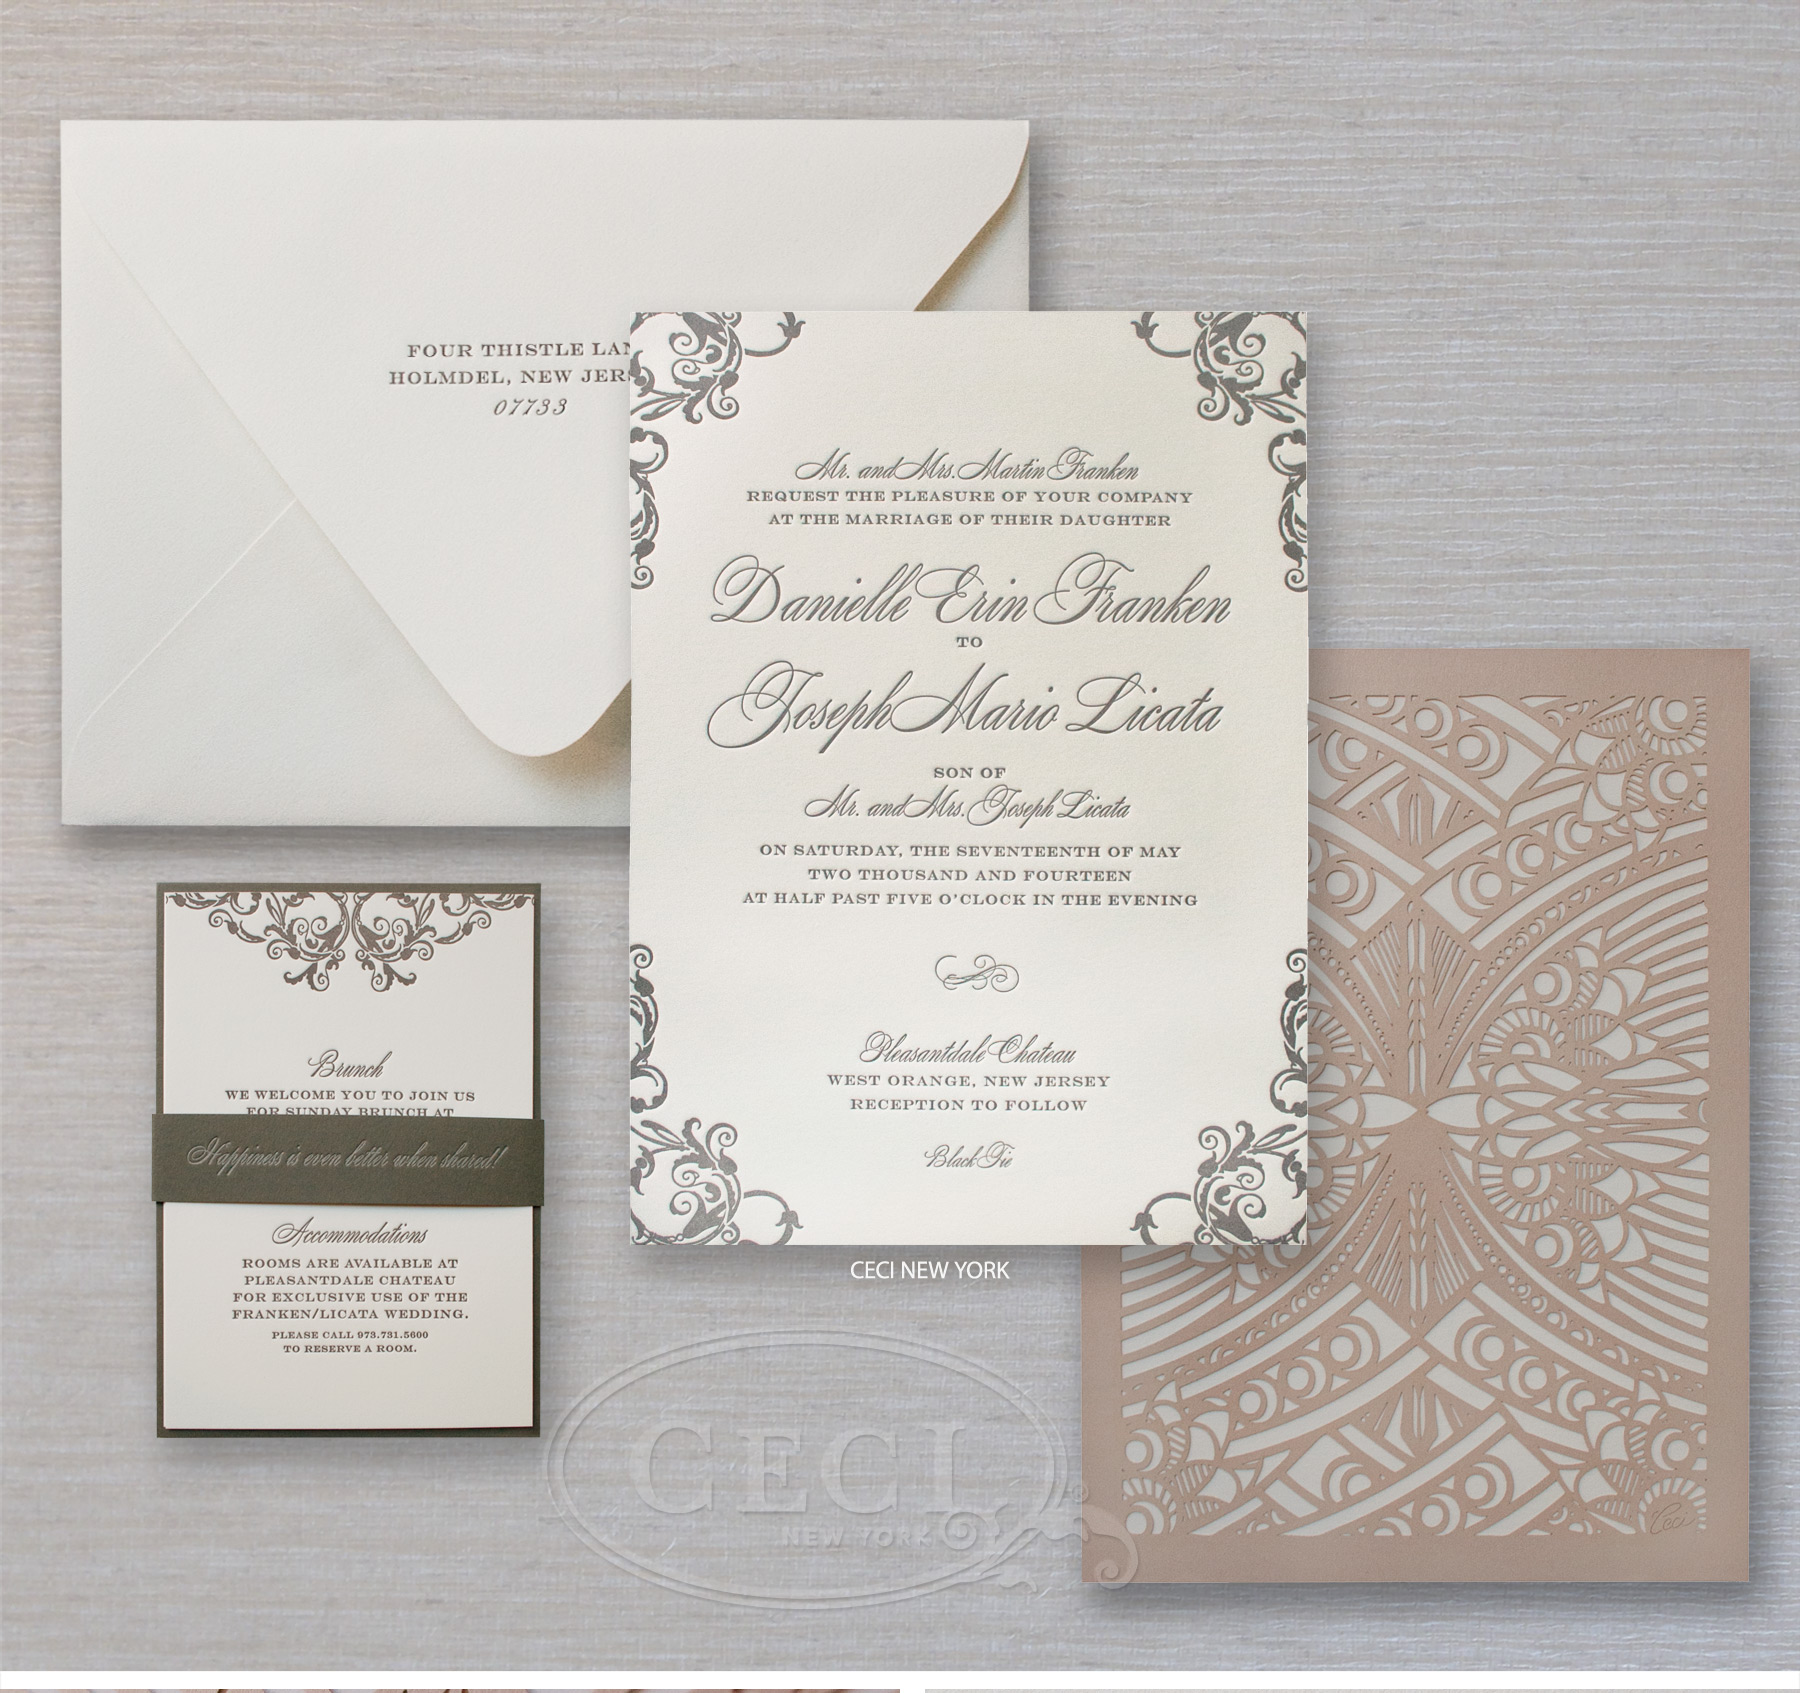 v280 our muse chateau wedding in new jersey danielle & joseph Wedding Invitation New Jersey luxury wedding invitations by ceci new york our muse chateau wedding in new jersey wedding invitations new jersey